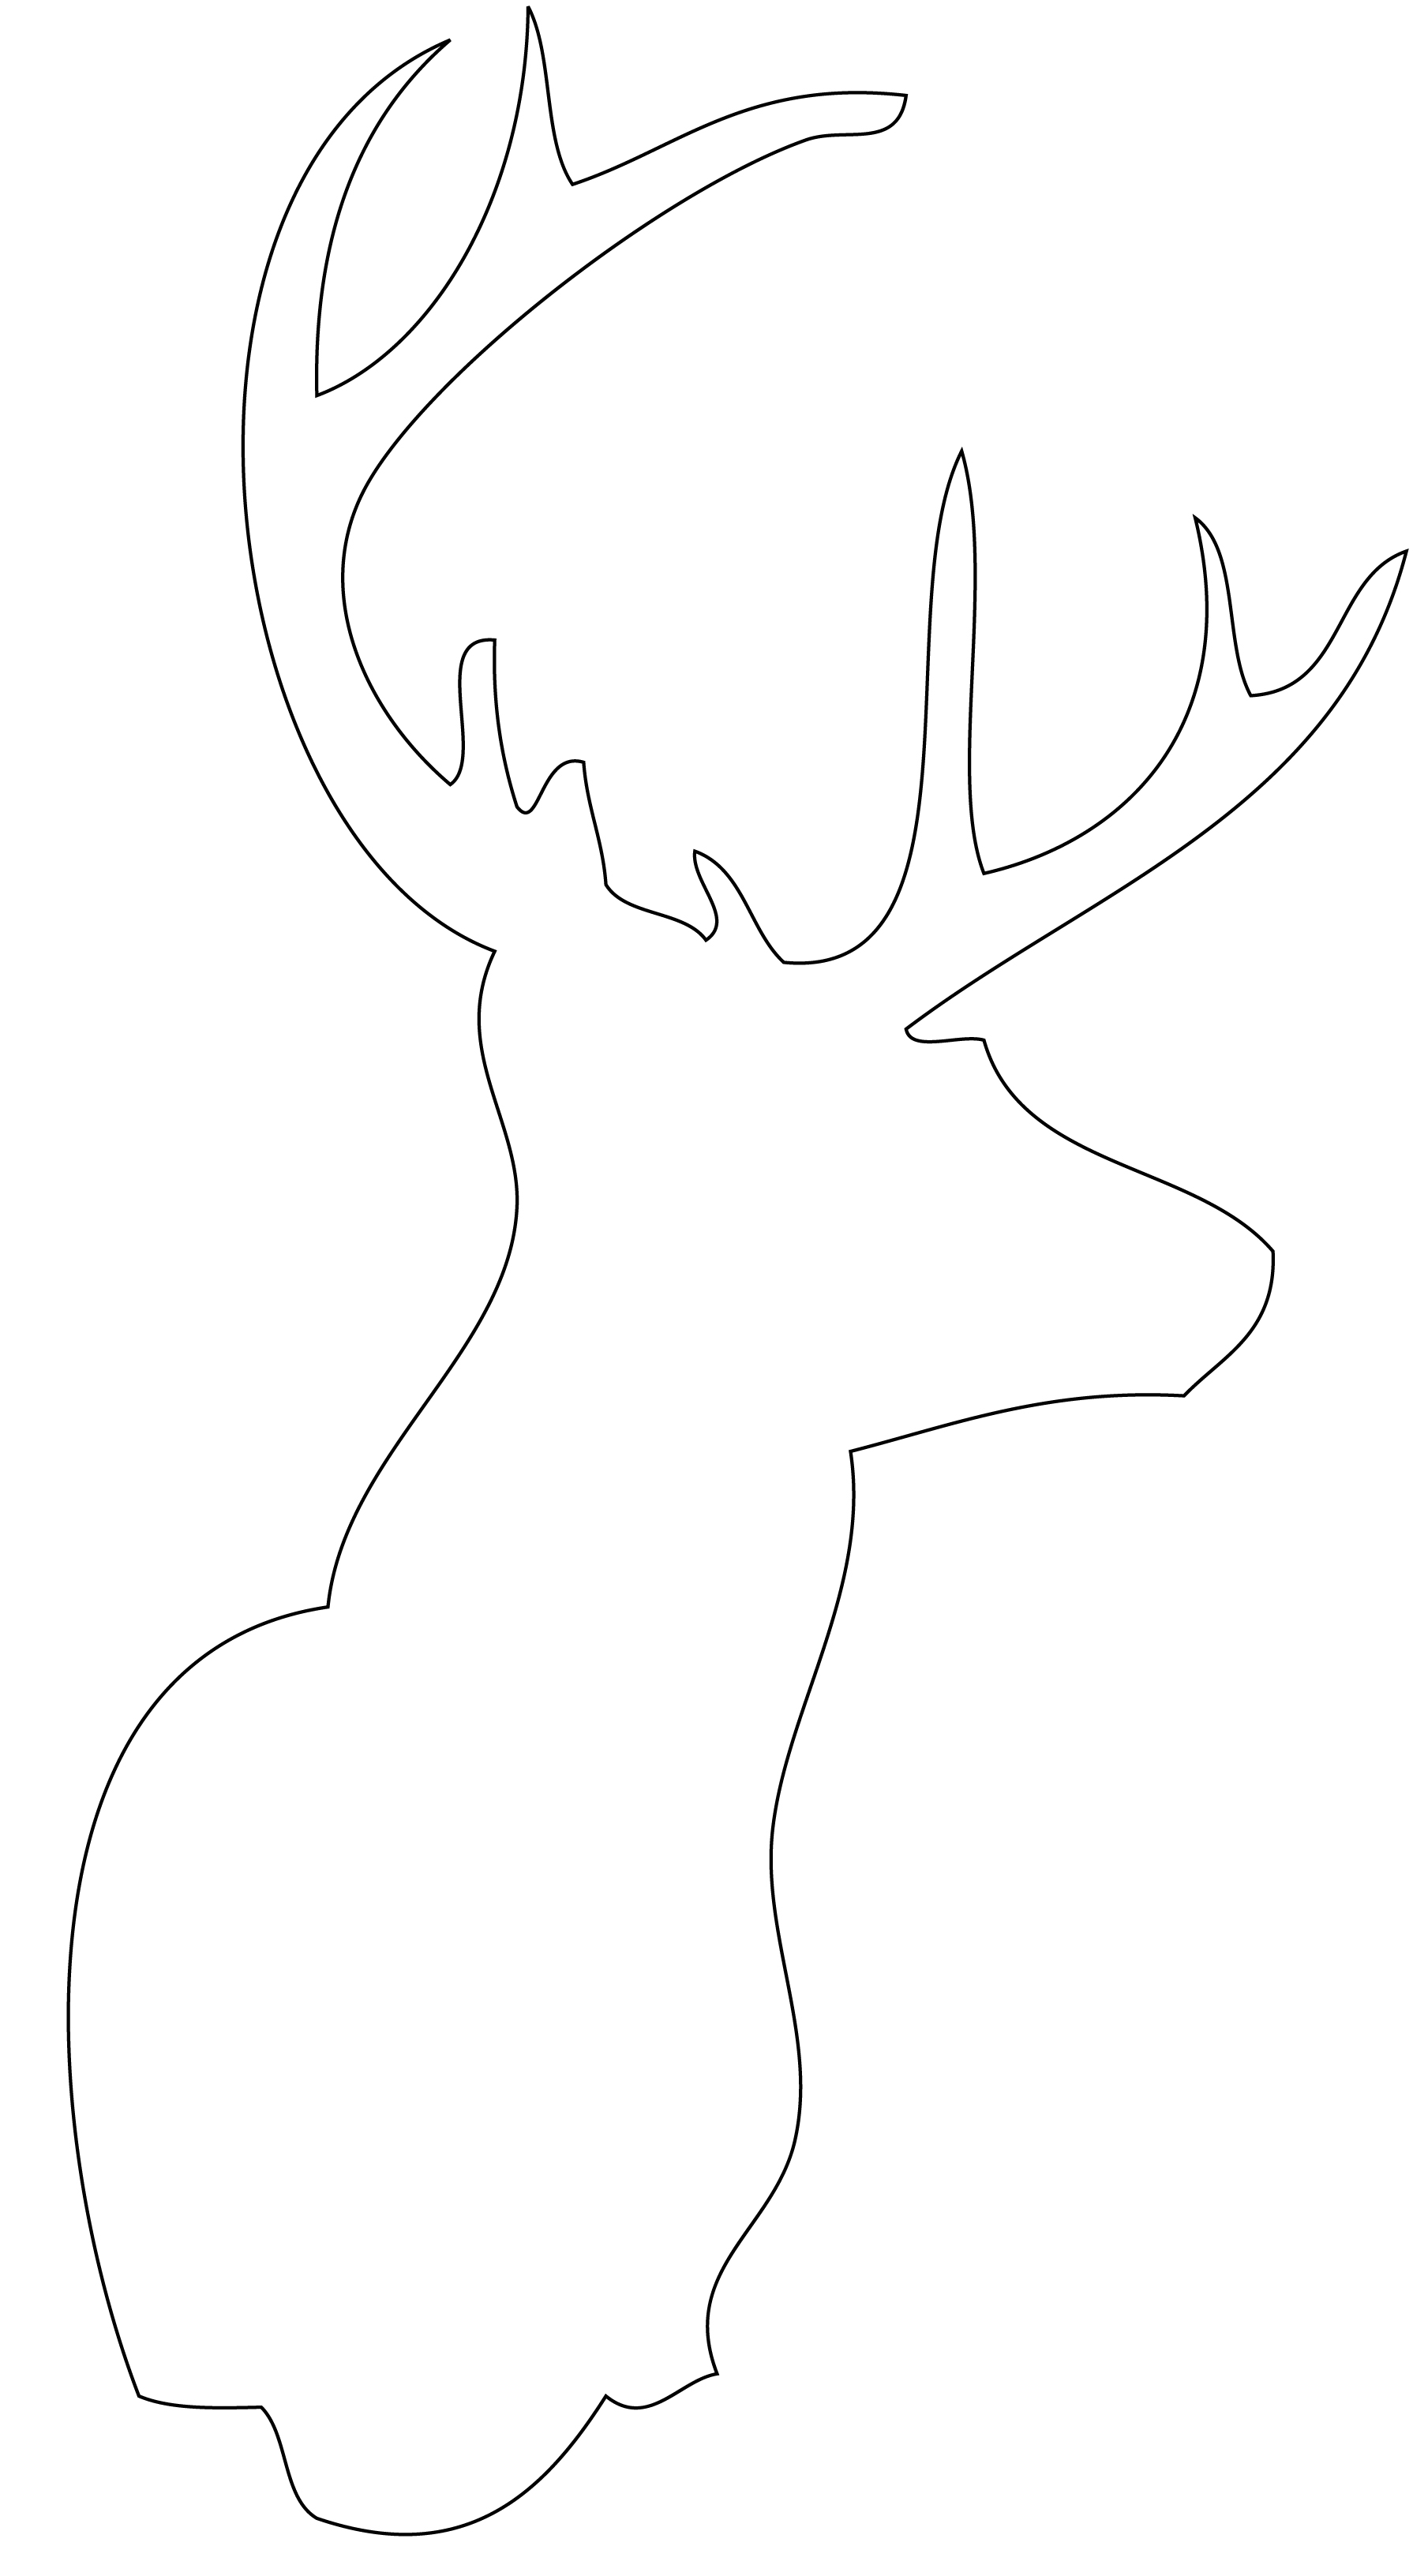 Deer Head Outline Drawing at PaintingValley.com.